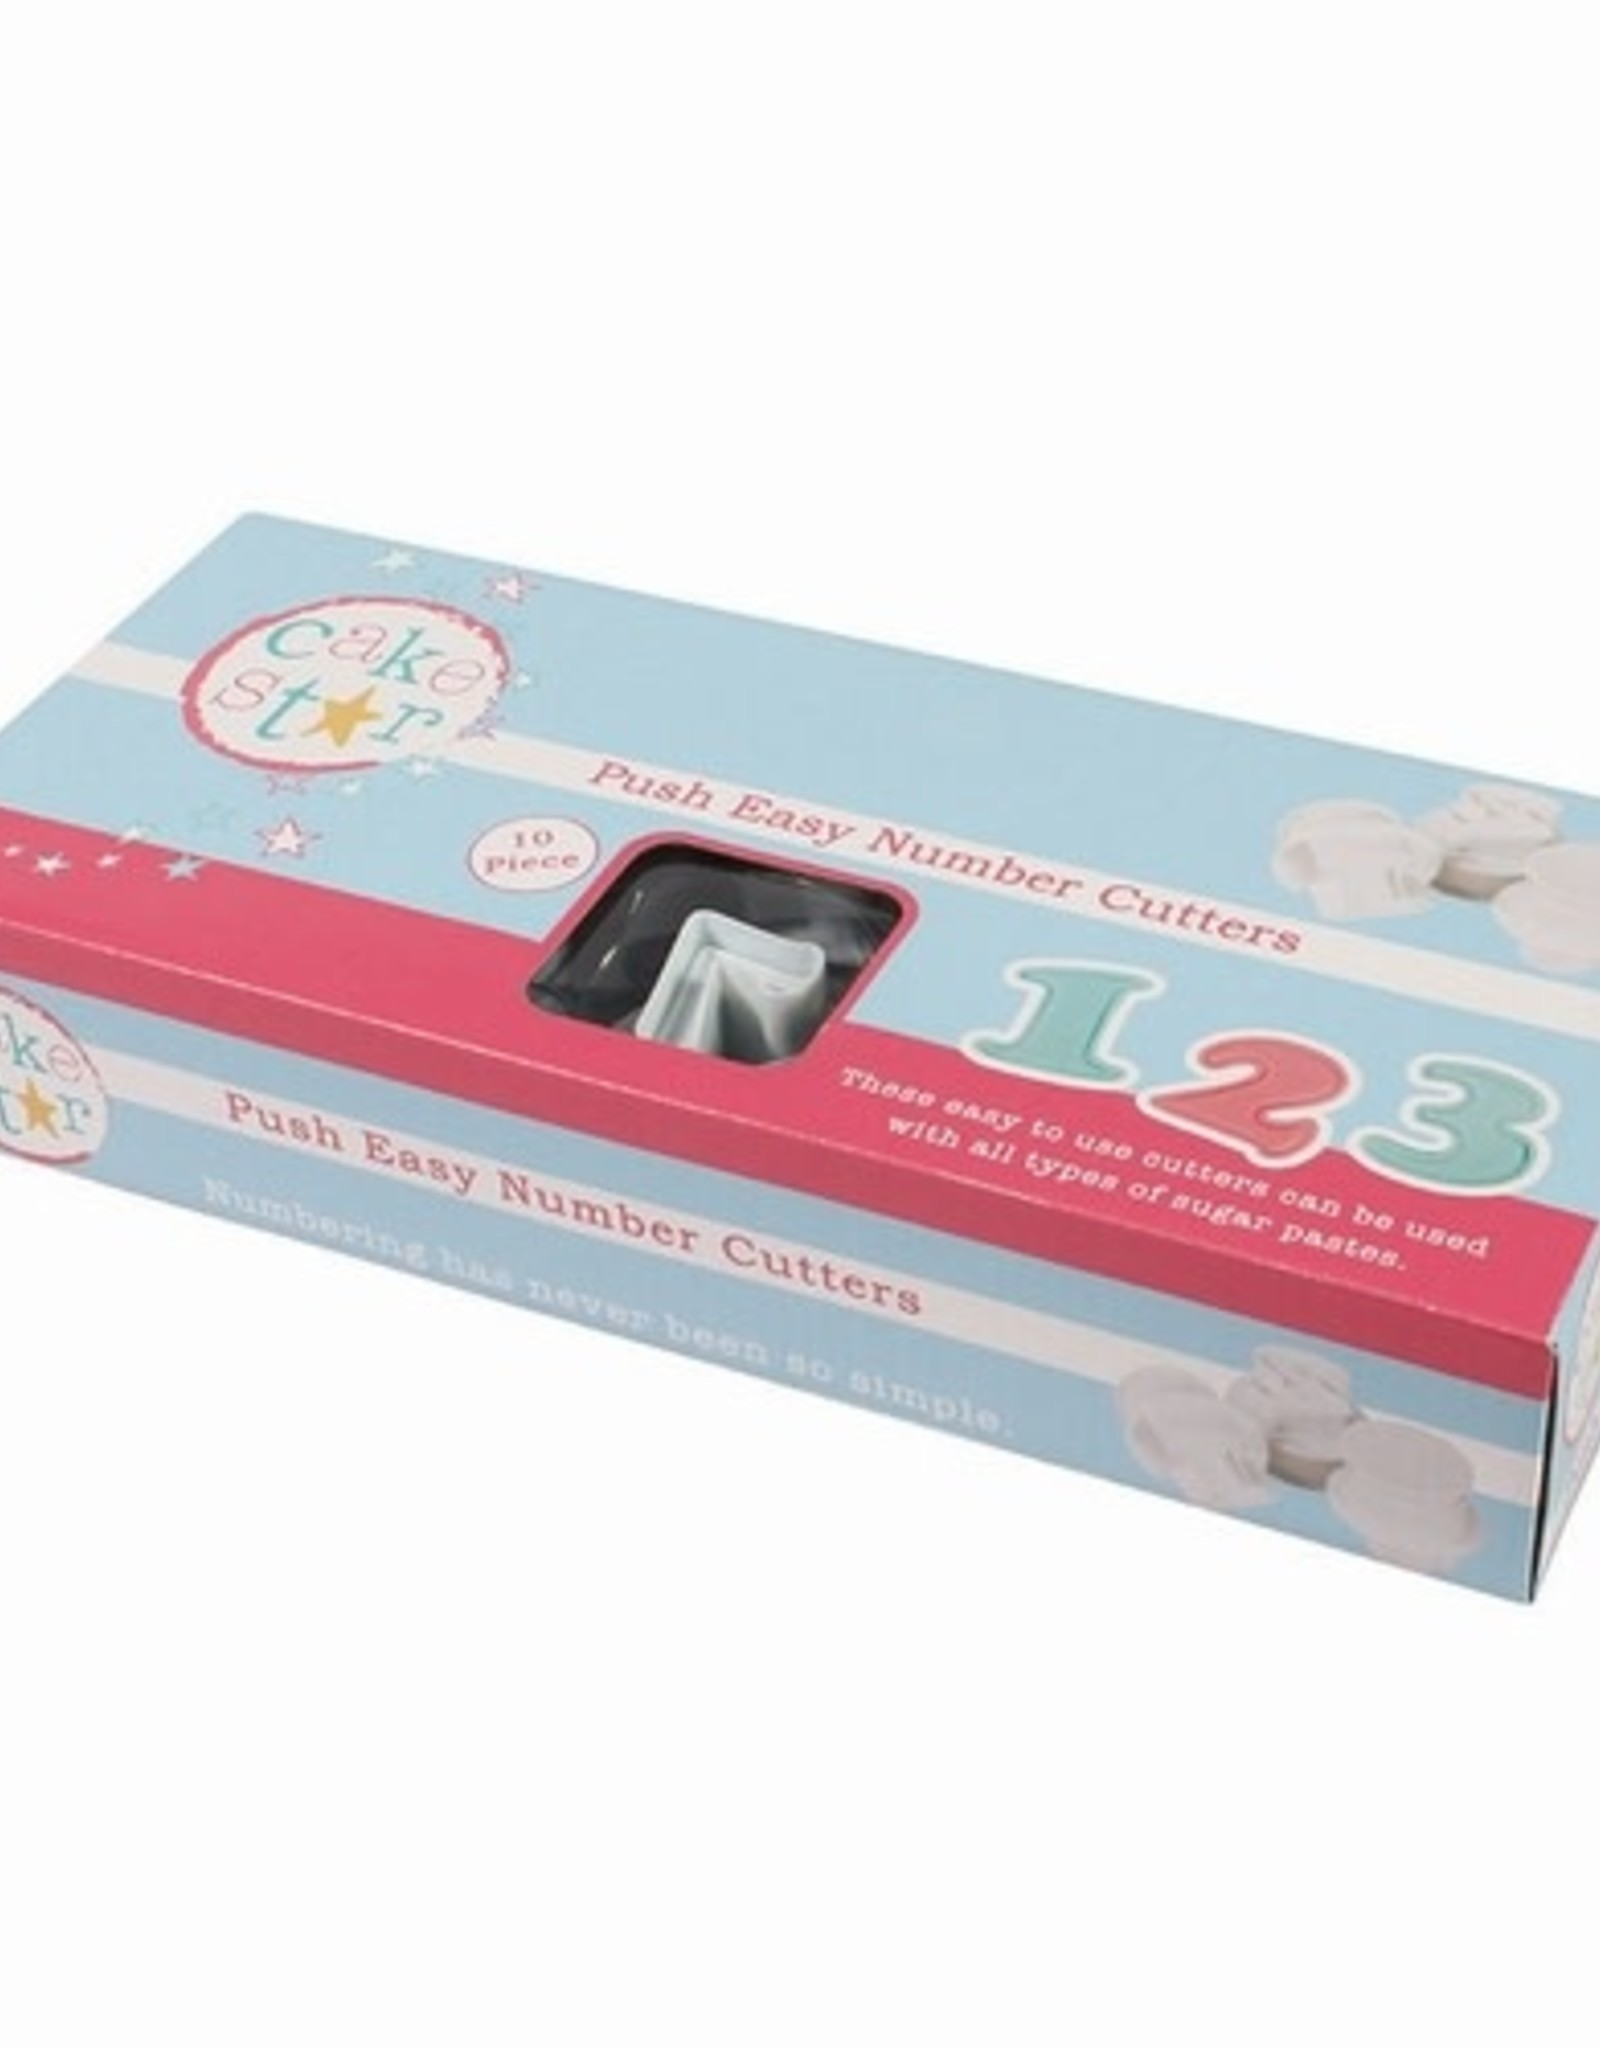 Cake Star Cake Star Push Easy Numbers Cutters Set/10